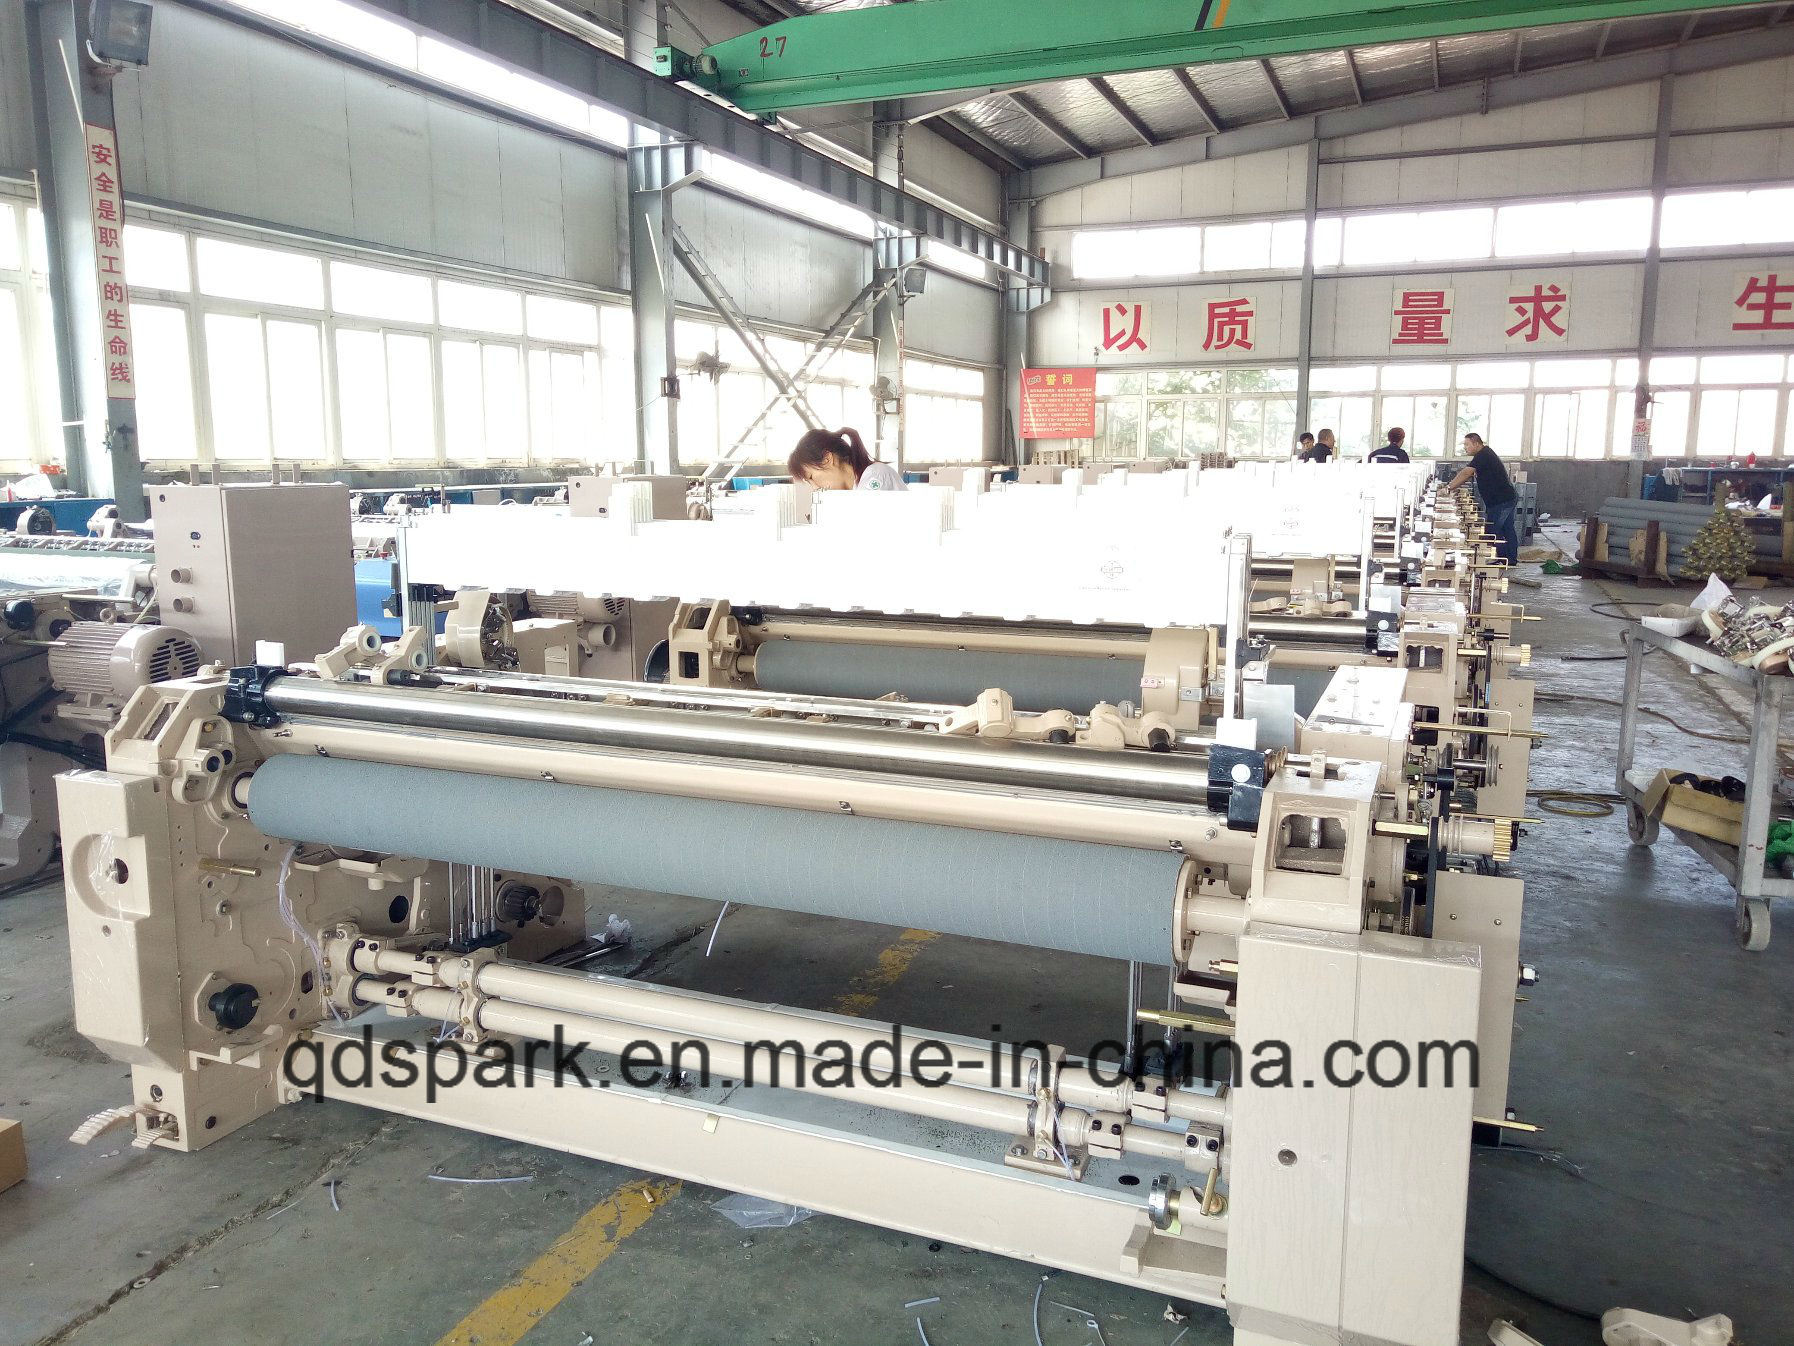 High Quality Water Jet Loom China Professional Manufacture